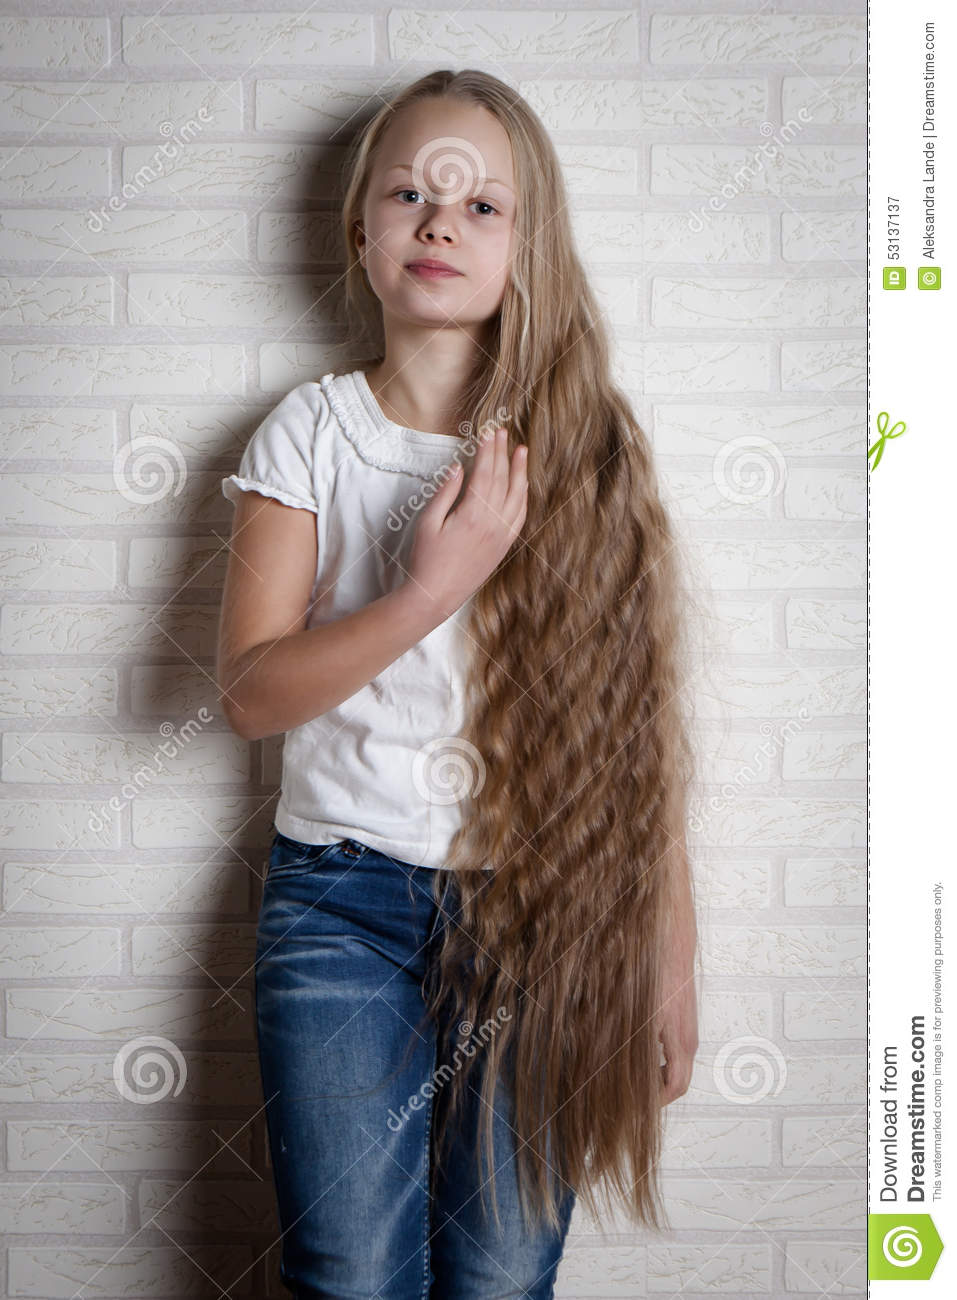 beautiful little girl with long hair stock image - image of funny